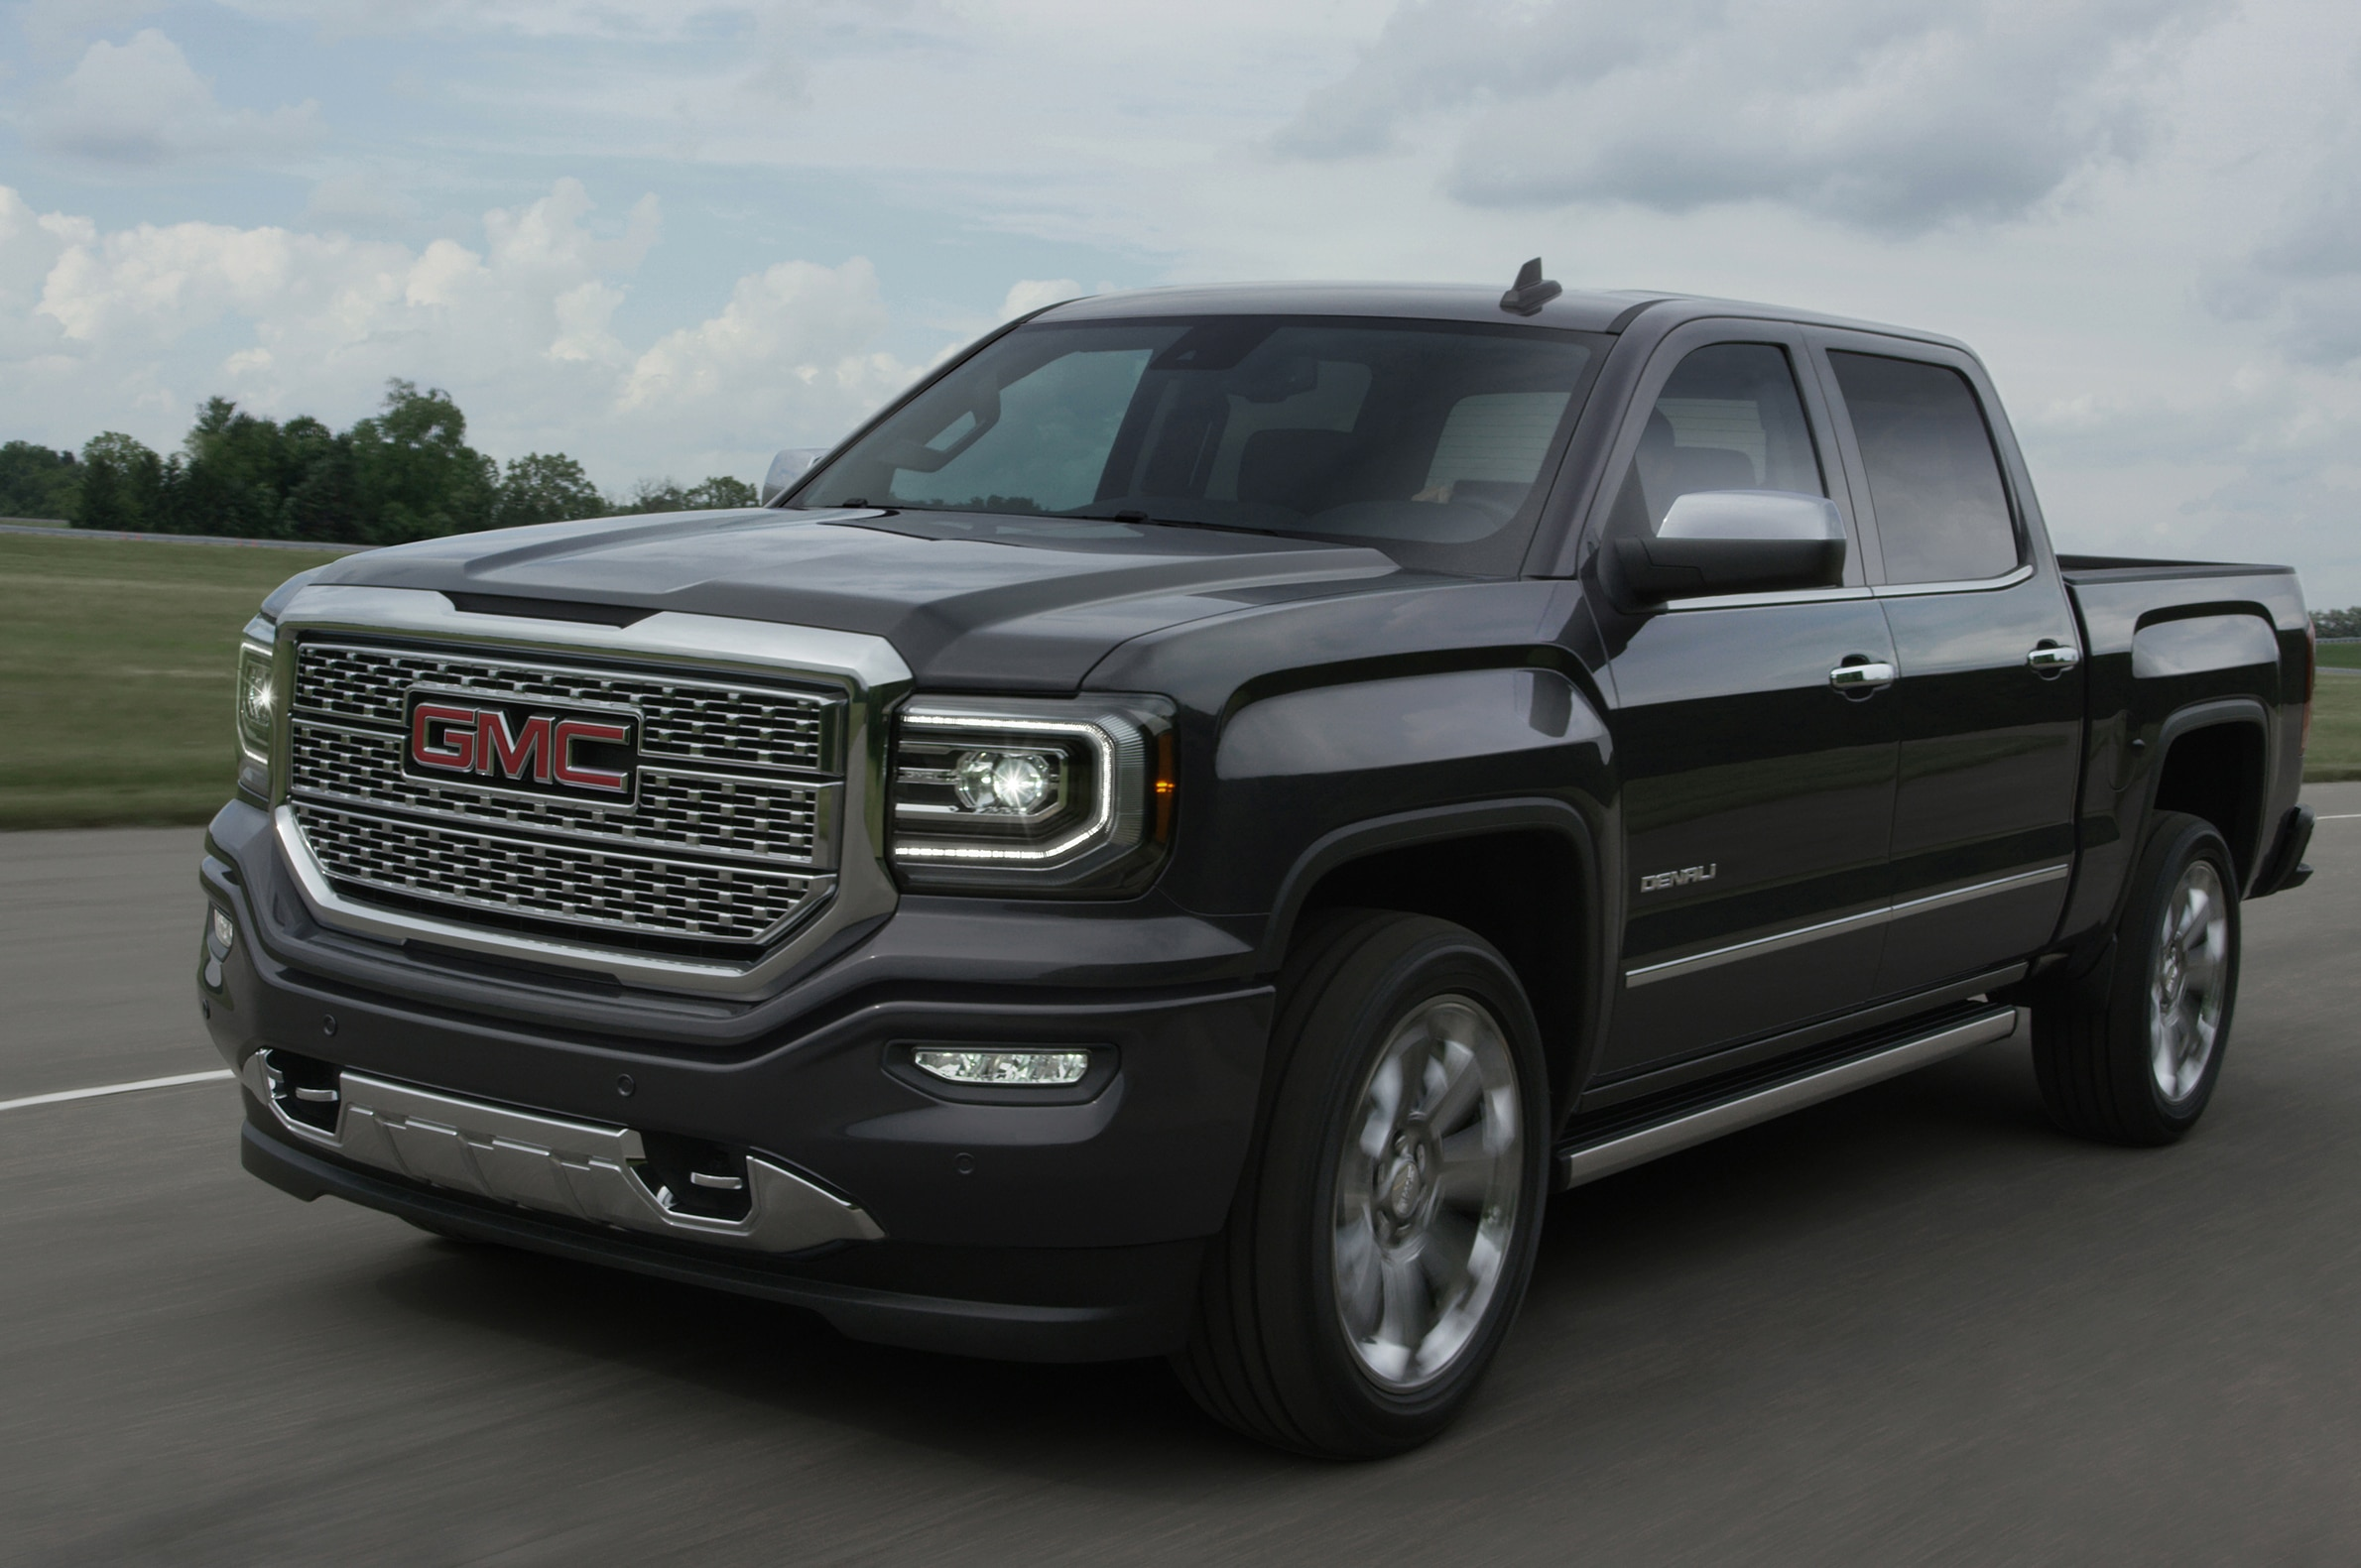 2016 gmc sierra gets refreshed front fascia led headlights. Black Bedroom Furniture Sets. Home Design Ideas